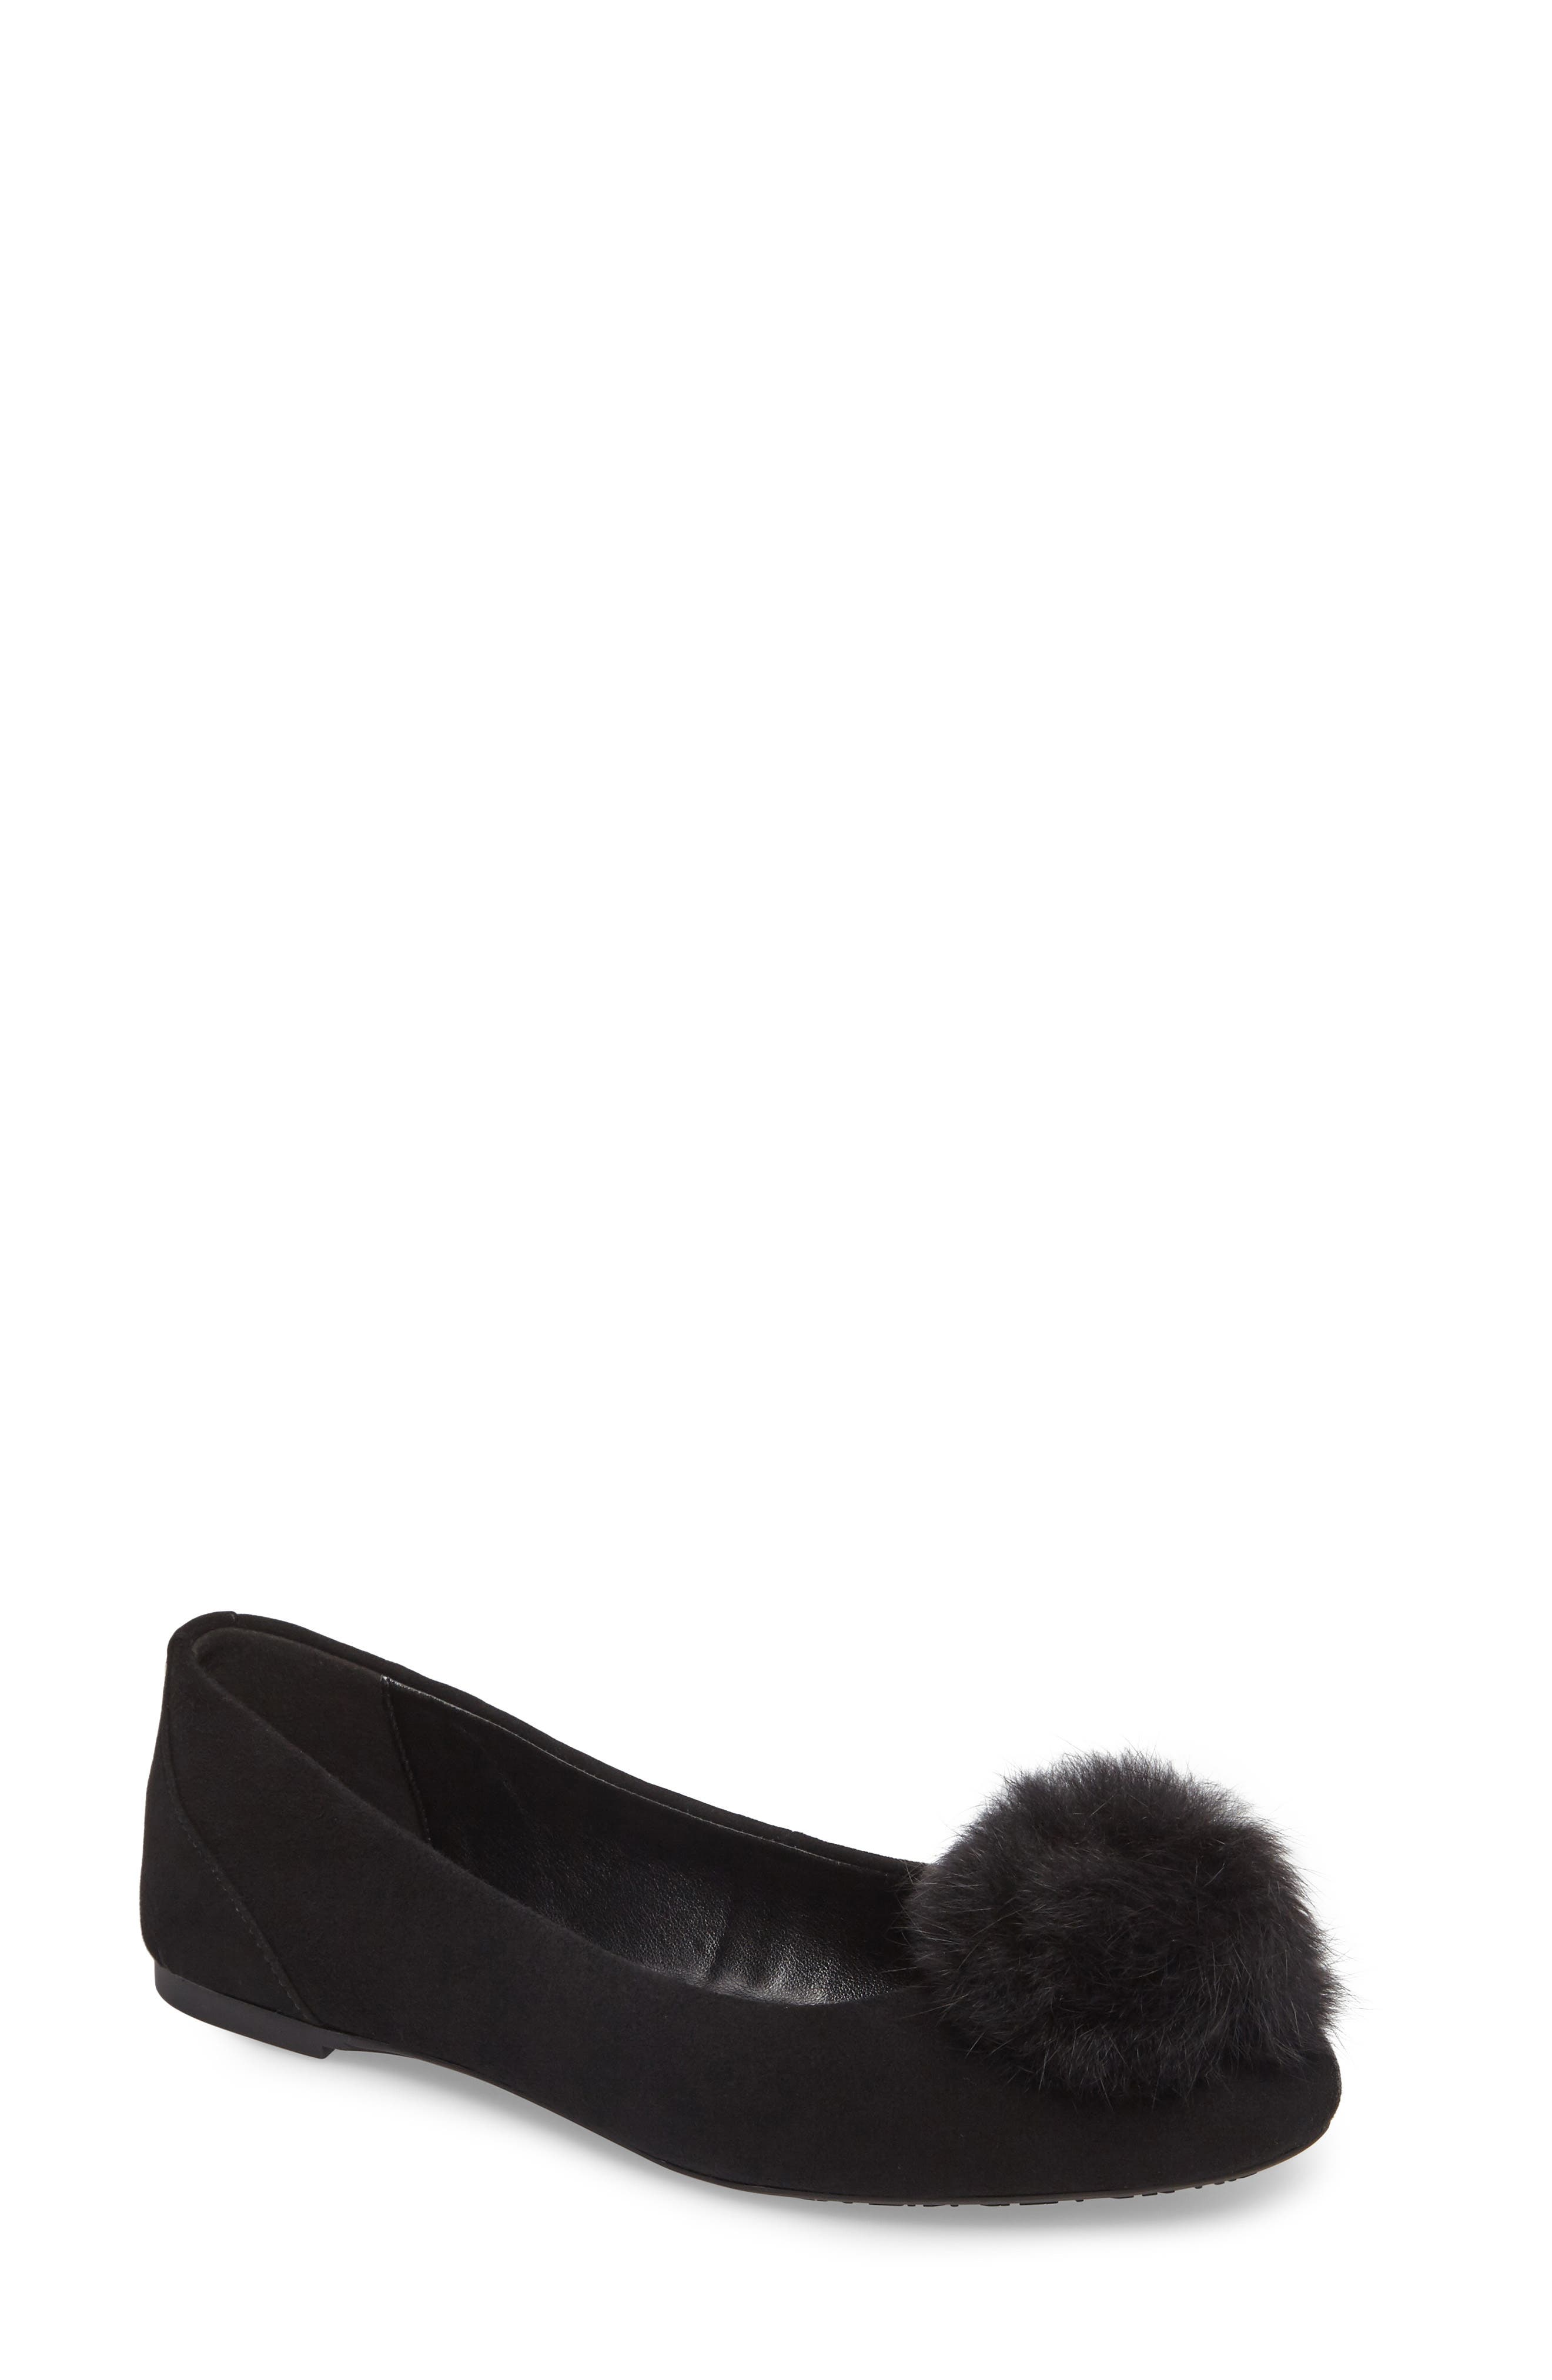 Alternate Image 1 Selected - MICHAEL Michael Kors Remi Ballet Flat with Genuine Rabbit Fur Pom (Women)